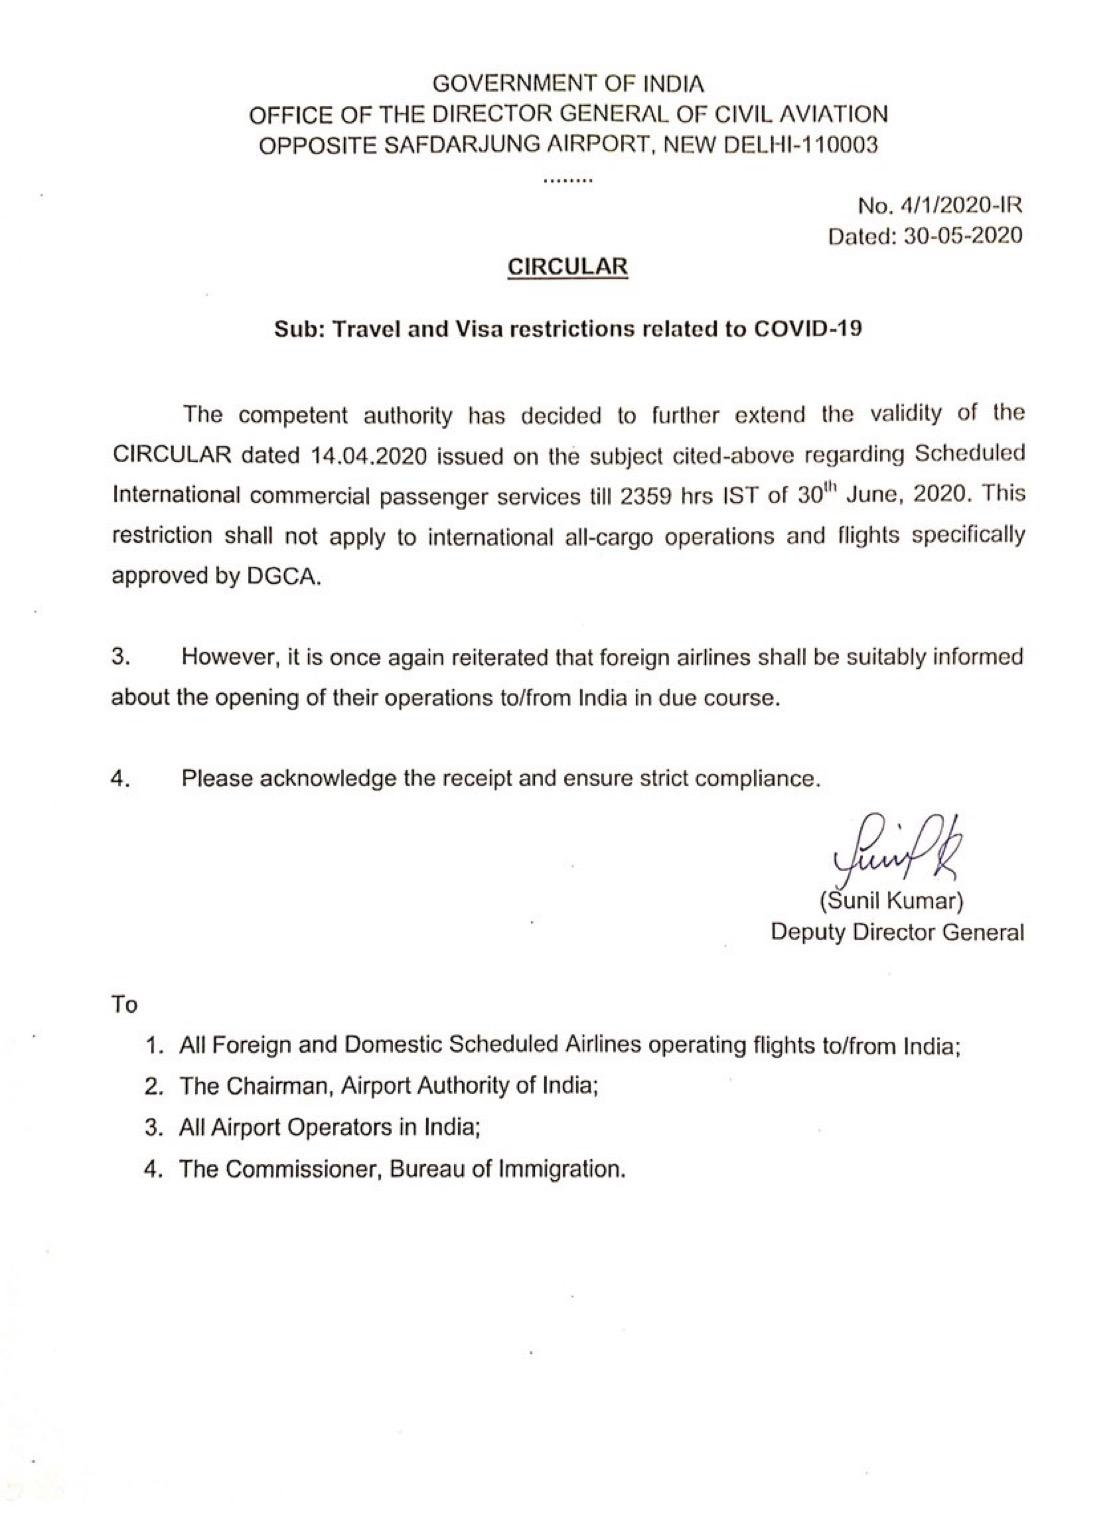 Additional Advisory on COVID-19: Ban on all international commercial passenger aircraft extended till June 30, 2020